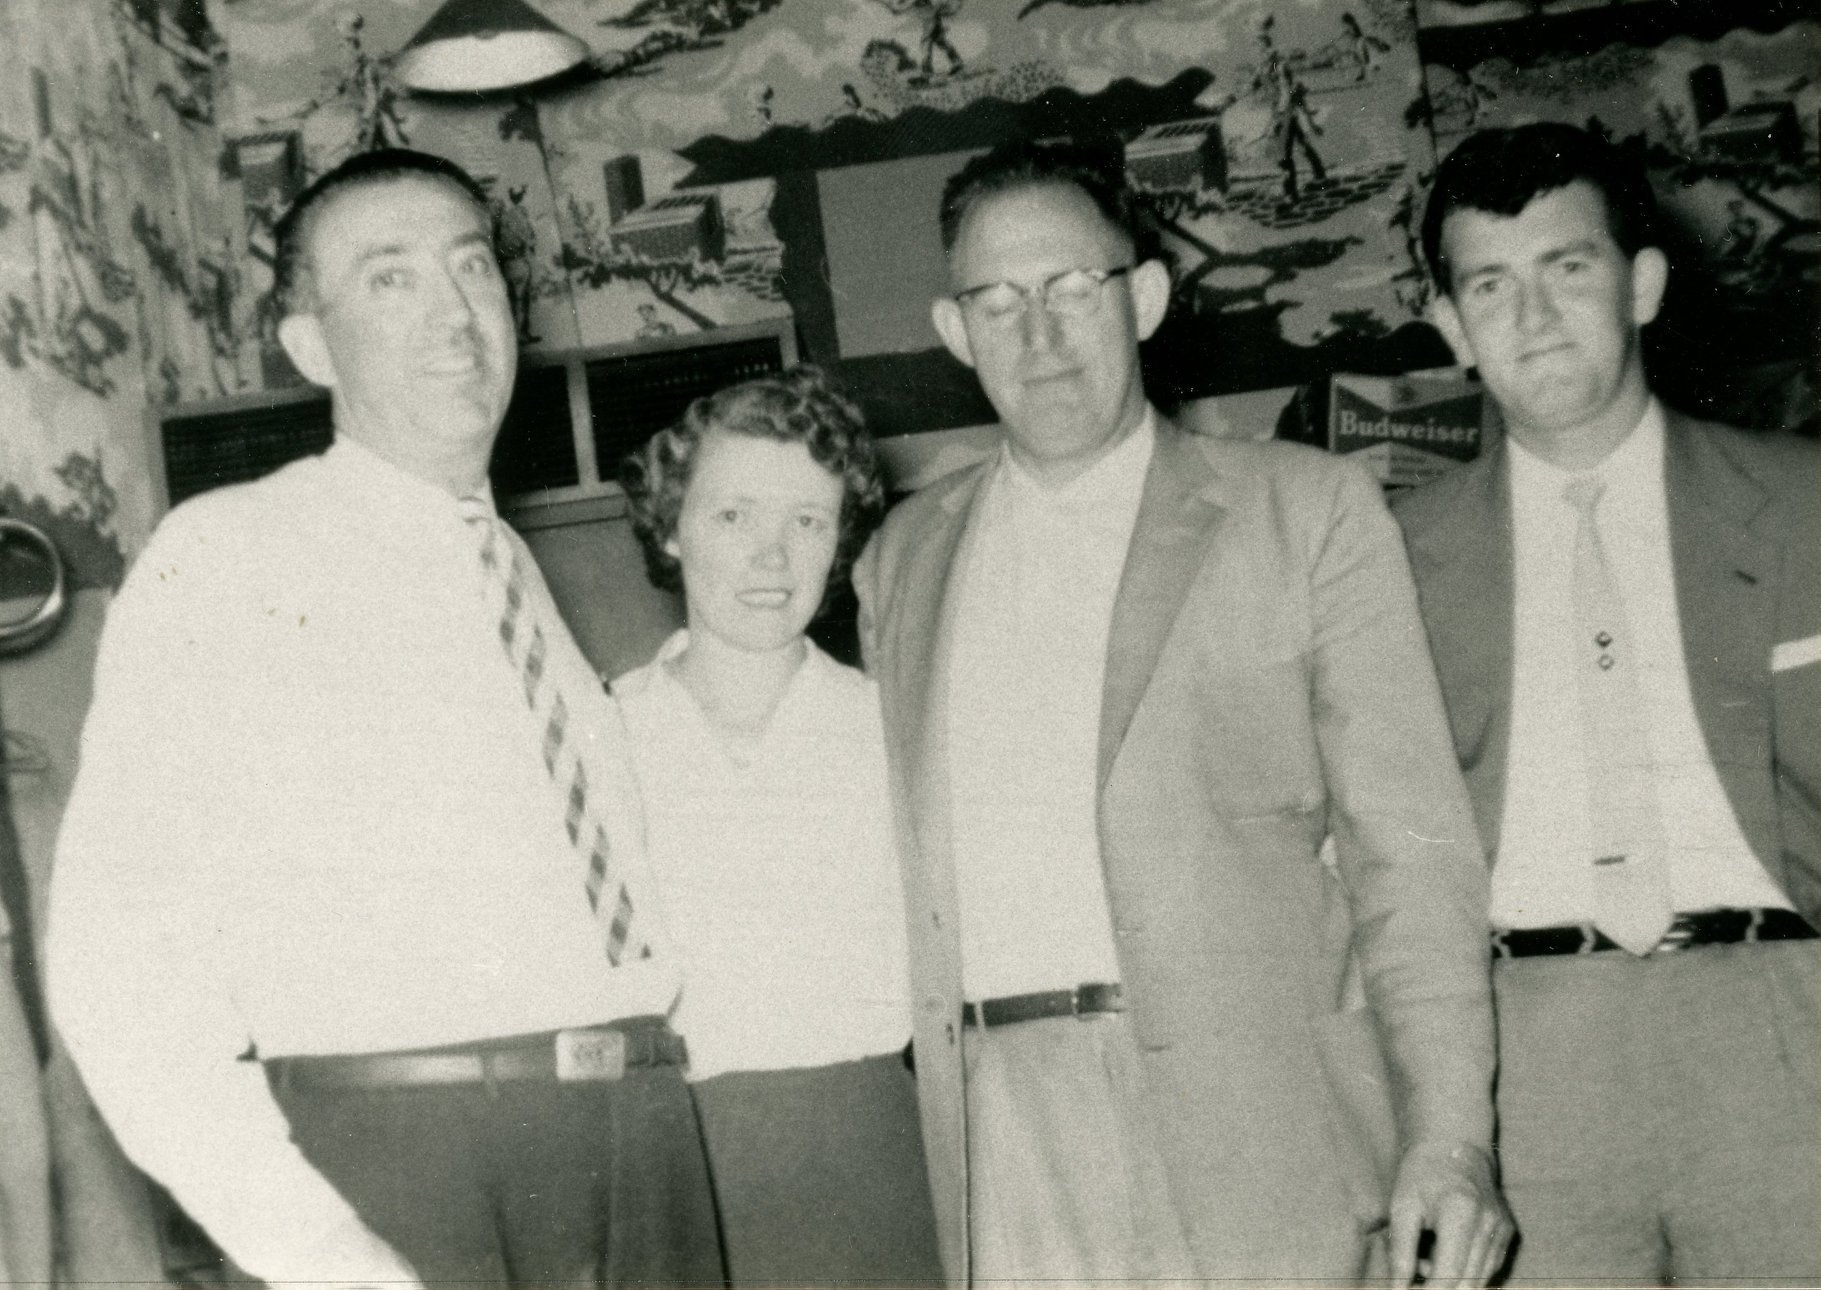 Jack Hanley (owner of Hanley's House of Happiness), wife [Agnes?] Hanley, Pat Curtin, unknown